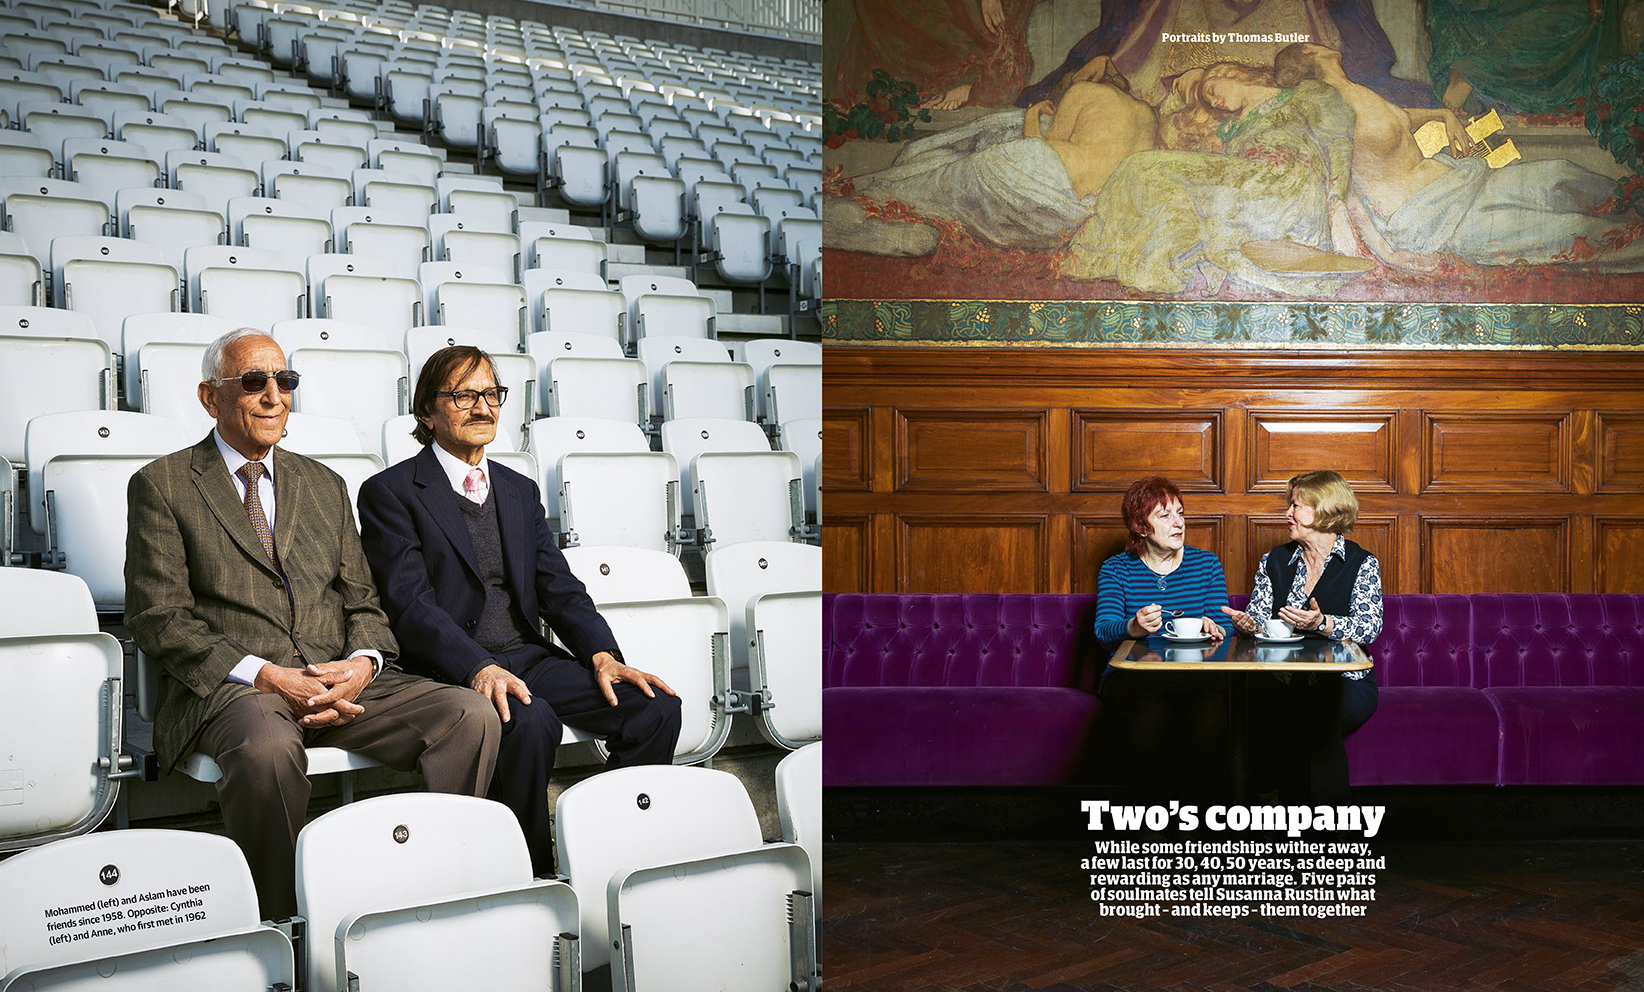 Pages from the 'Two's company' feature in the Guardian Weekend Magazine.